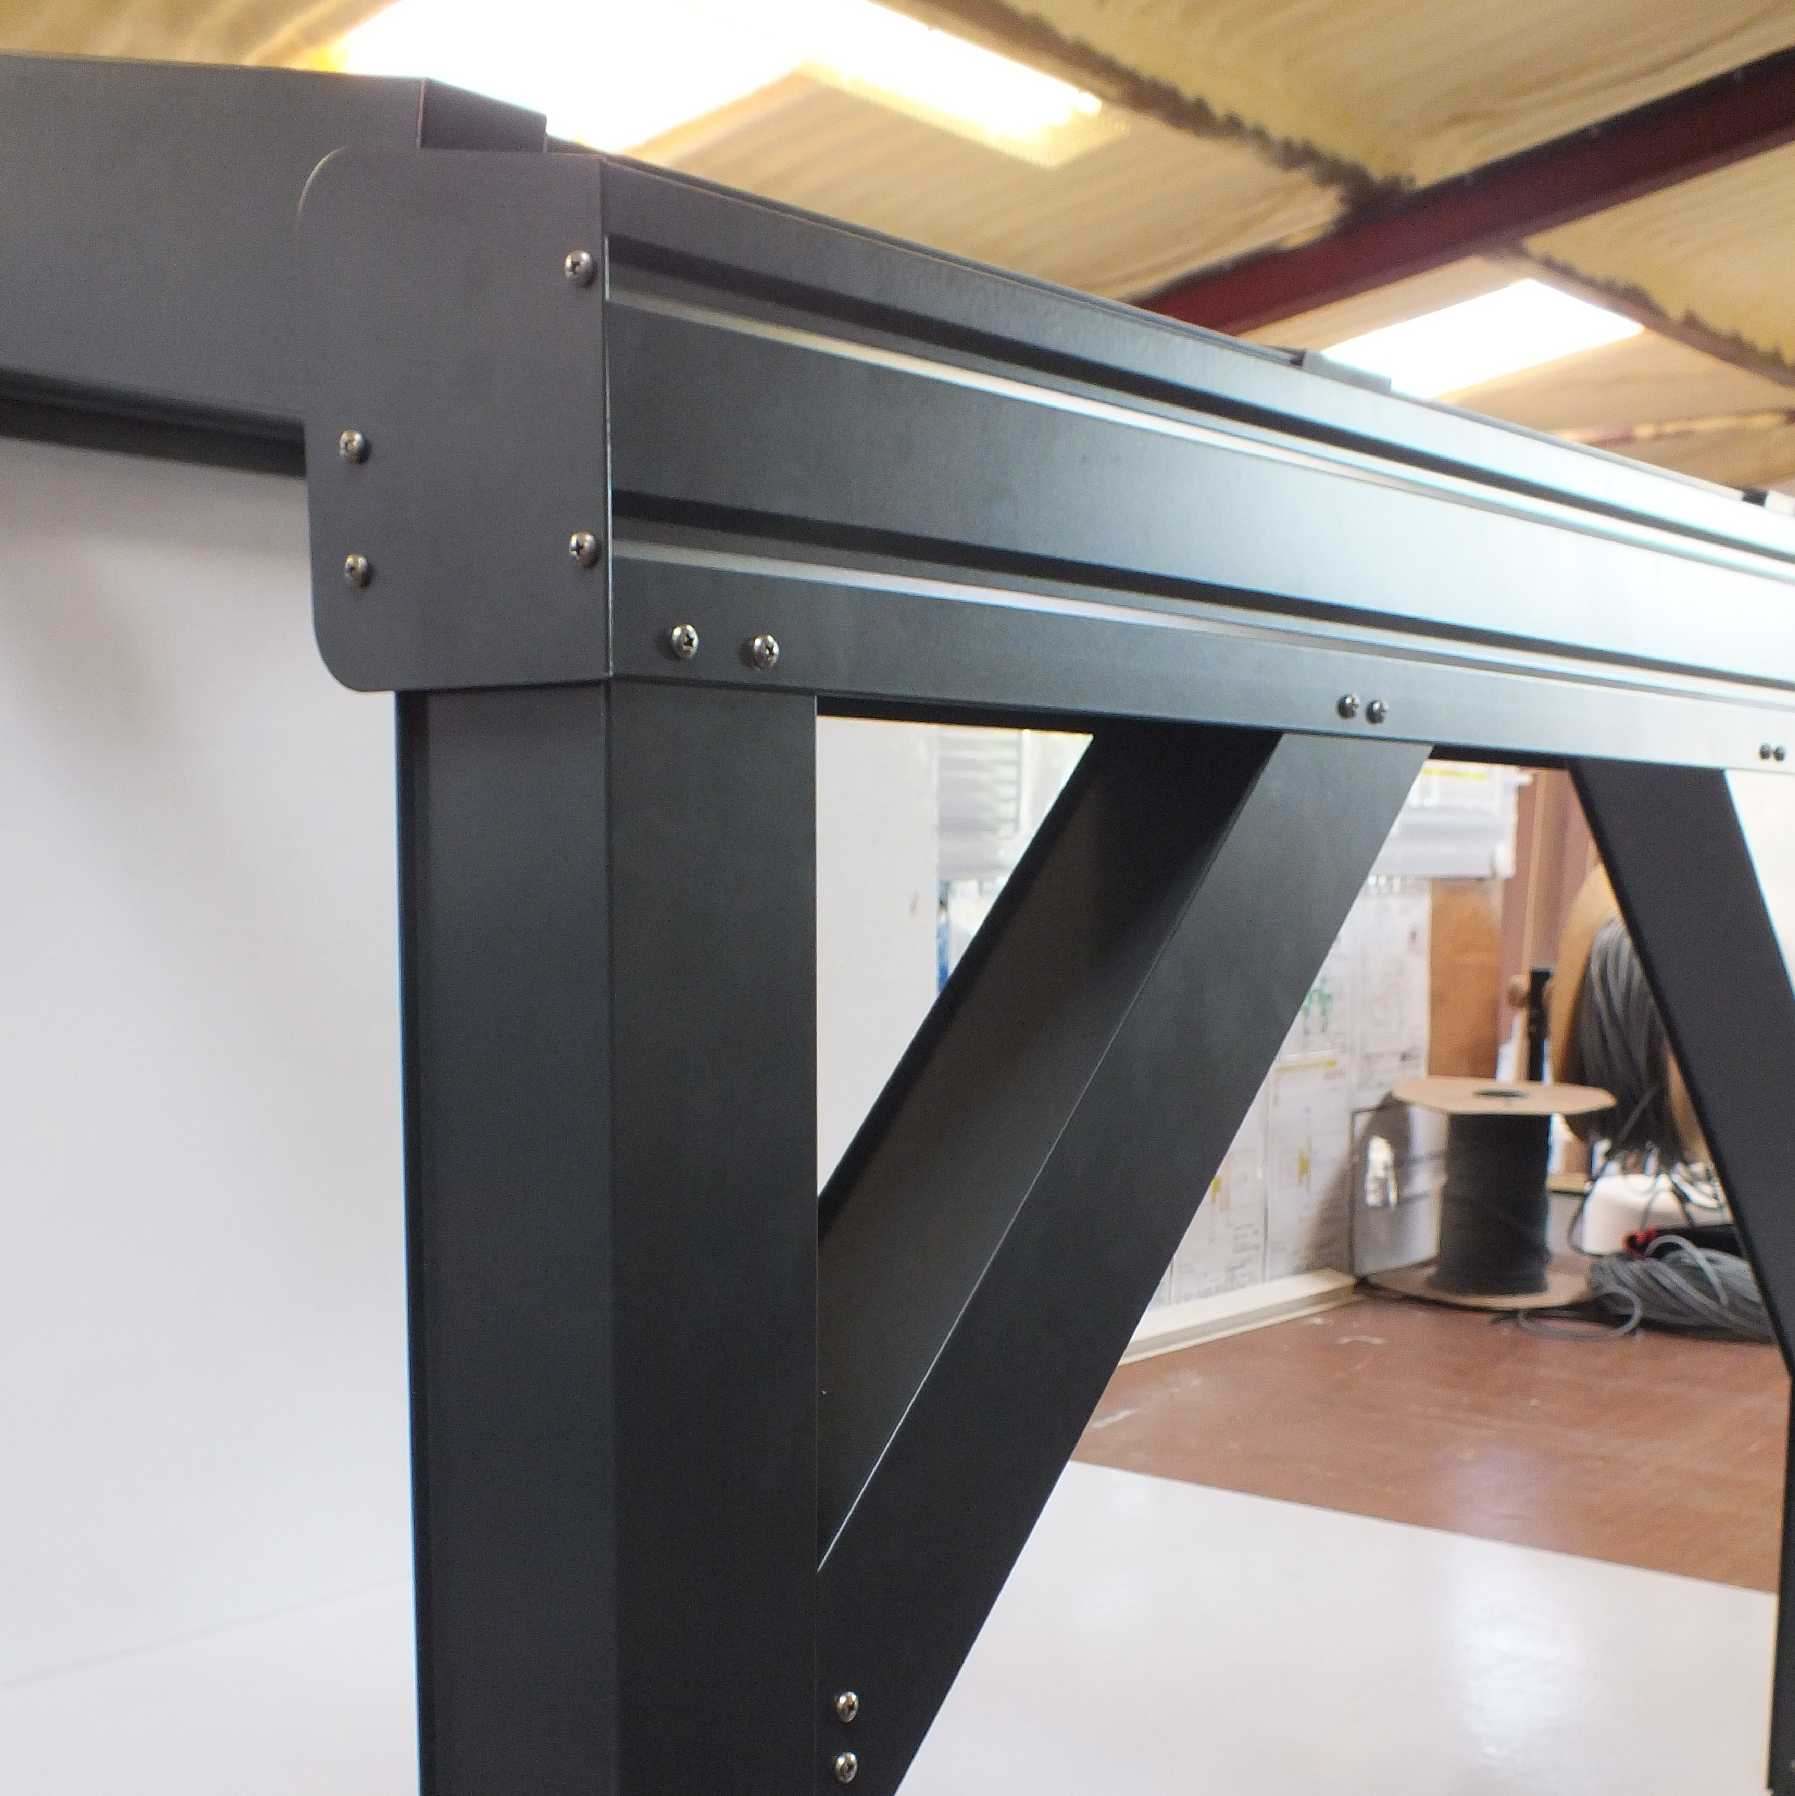 Omega Smart Lean-To Canopy, Anthracite Grey, UNGLAZED for 6mm Glazing - 9.8m (W) x 3.0m (P), (5) Supporting Posts from Omega Build